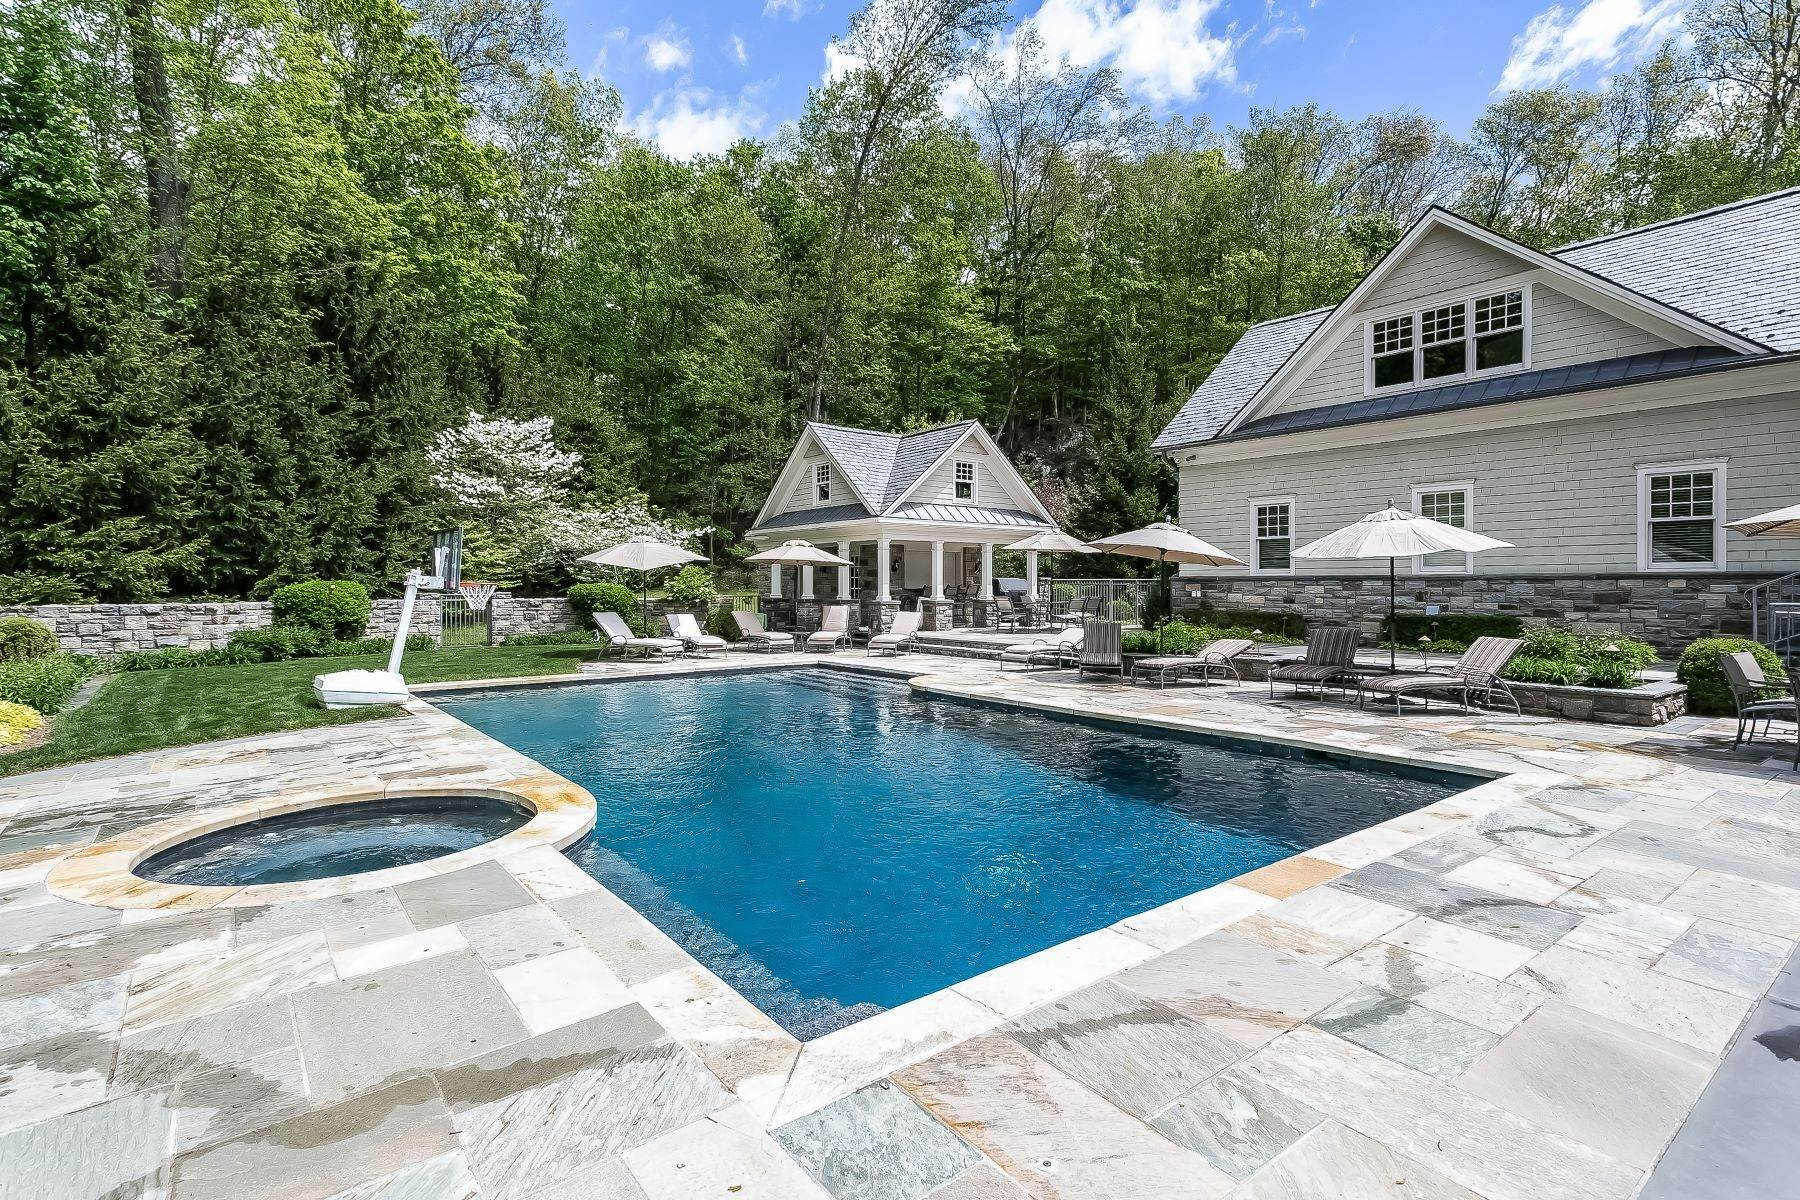 Single Family Homes for Sale at 16 Cerf Lane Mount Kisco, New York 10549 United States